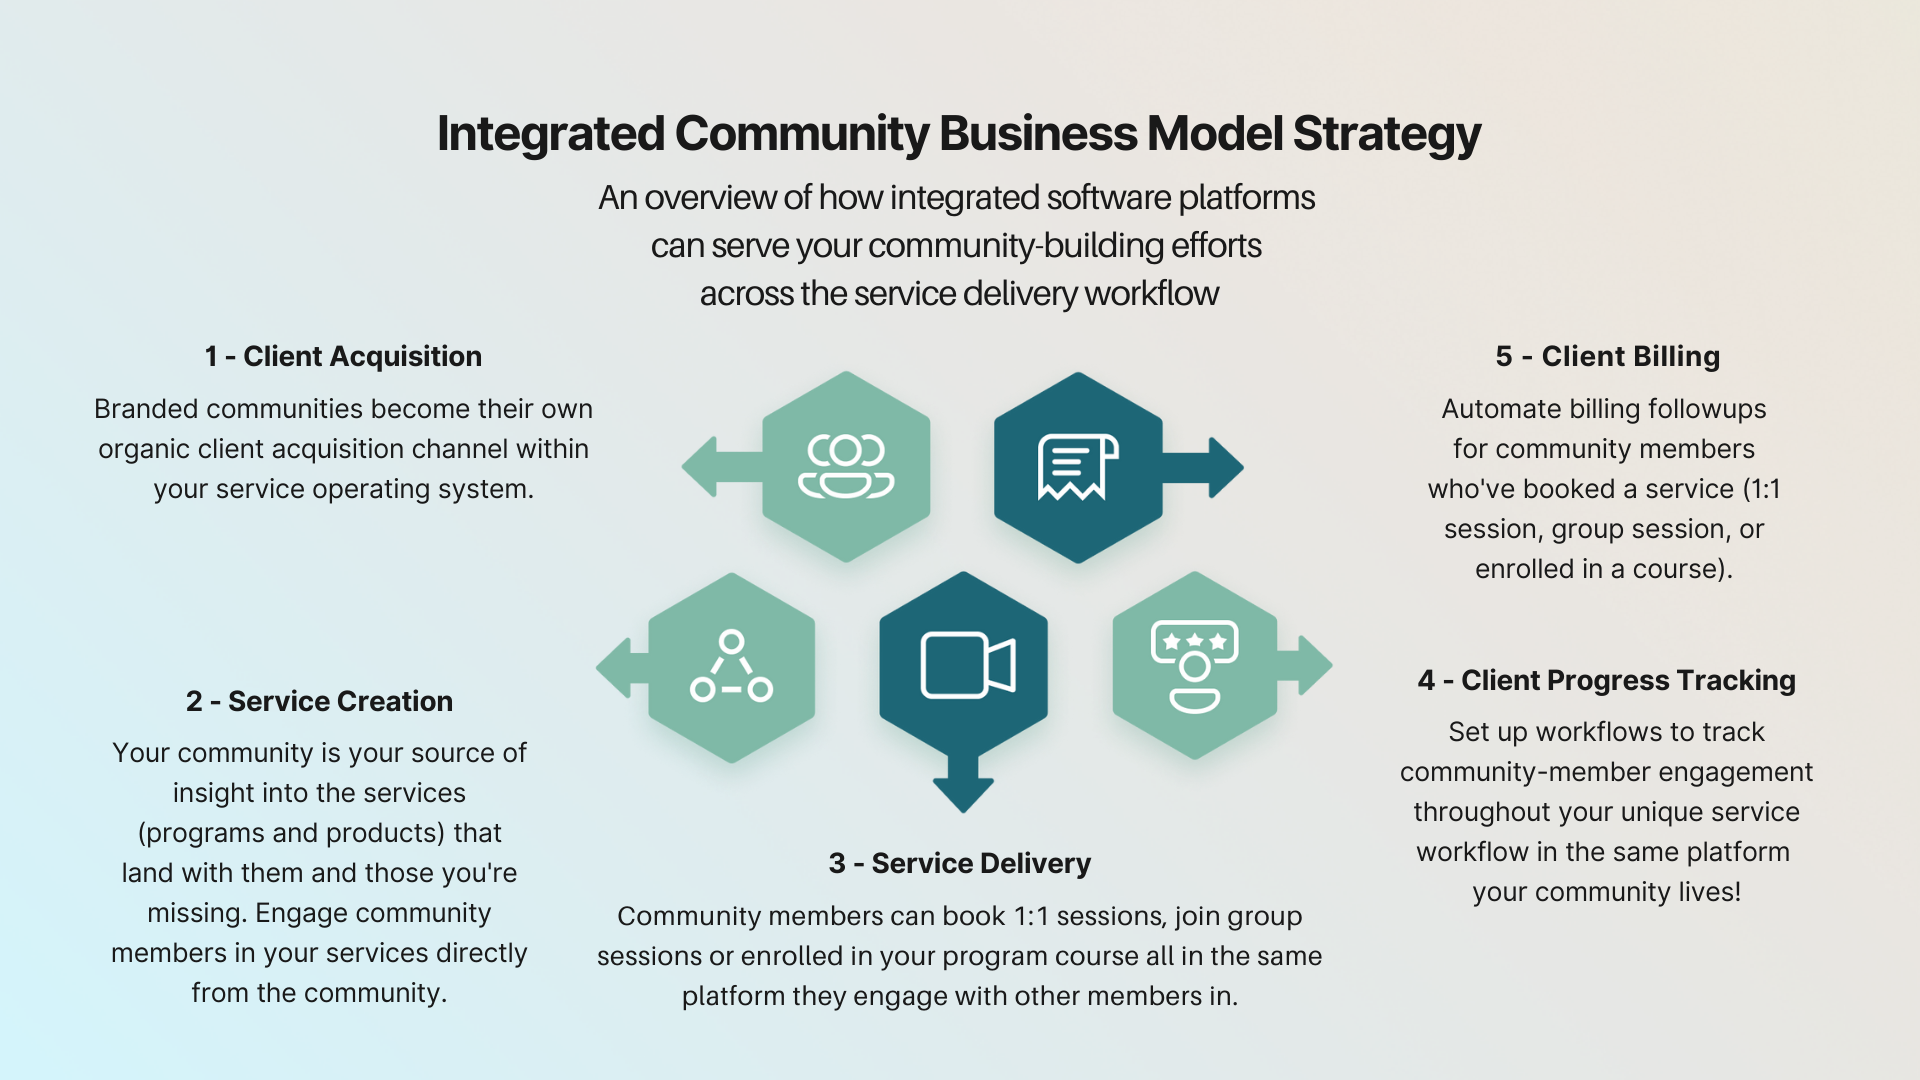 How Integrated service platforms can serve your community strategy across the service workflow | Profi | Community business model strategy